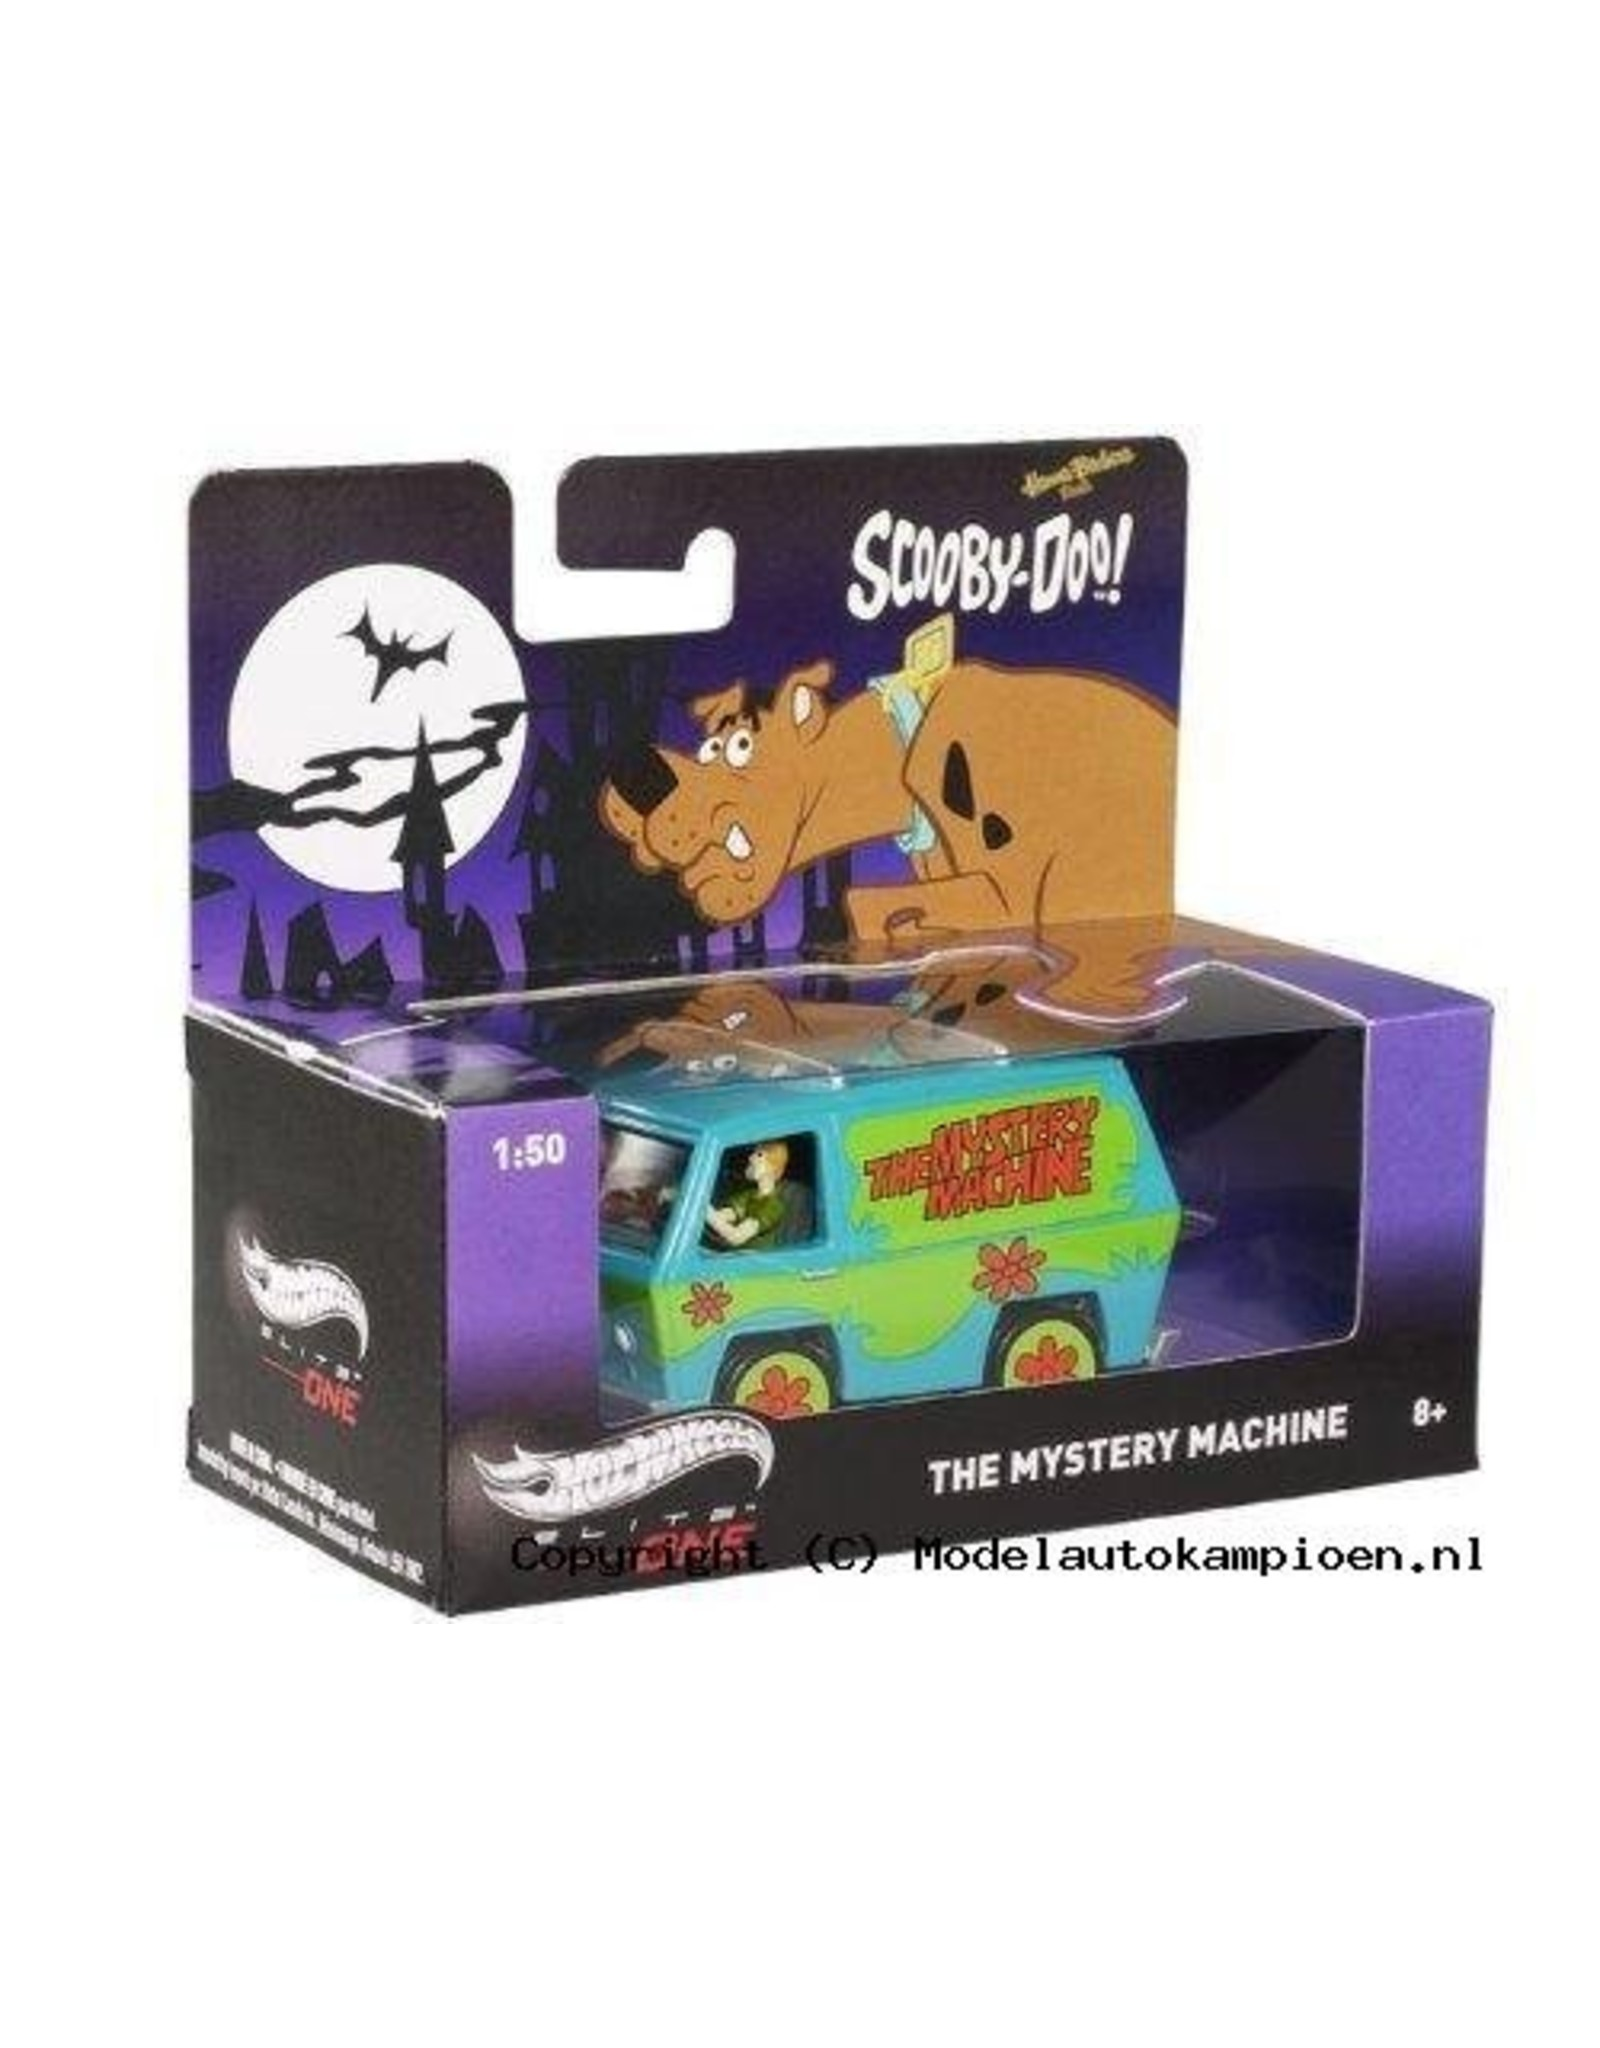 Hotwheels Elite The Mystery Machine 'Scooby-Doo' - 1:50 - Hotwheels Elite